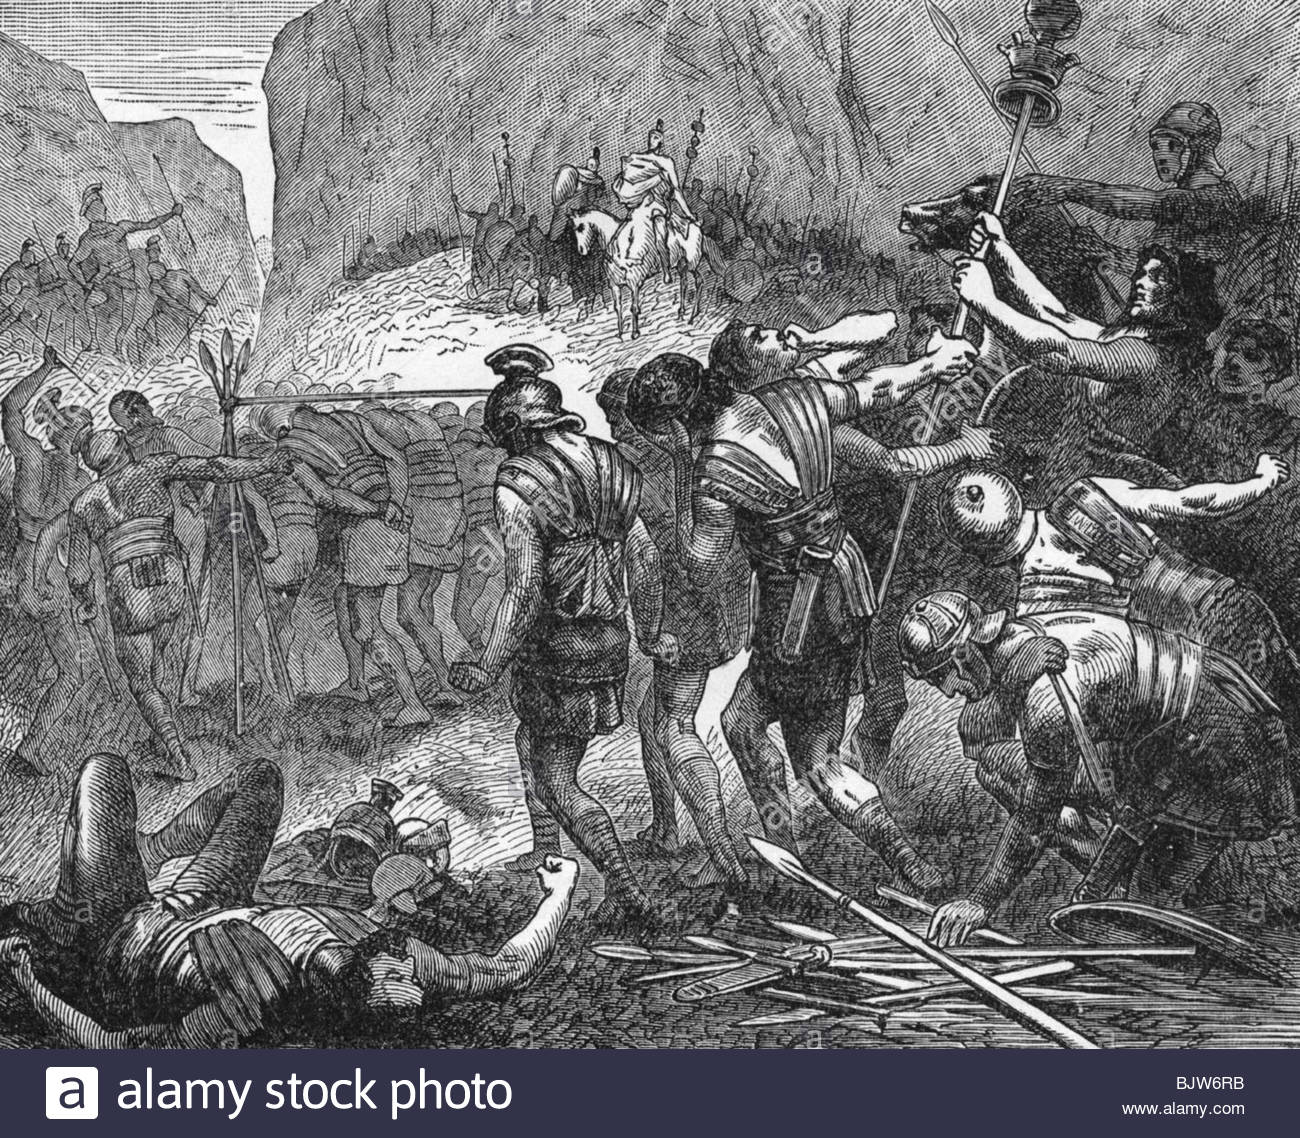 events, Second Samnite War 326 - 304 BC, Battle of the Caudine Forks, 321  BC, the defeated Romans passing under a yoke, wood engraving, 19th century,